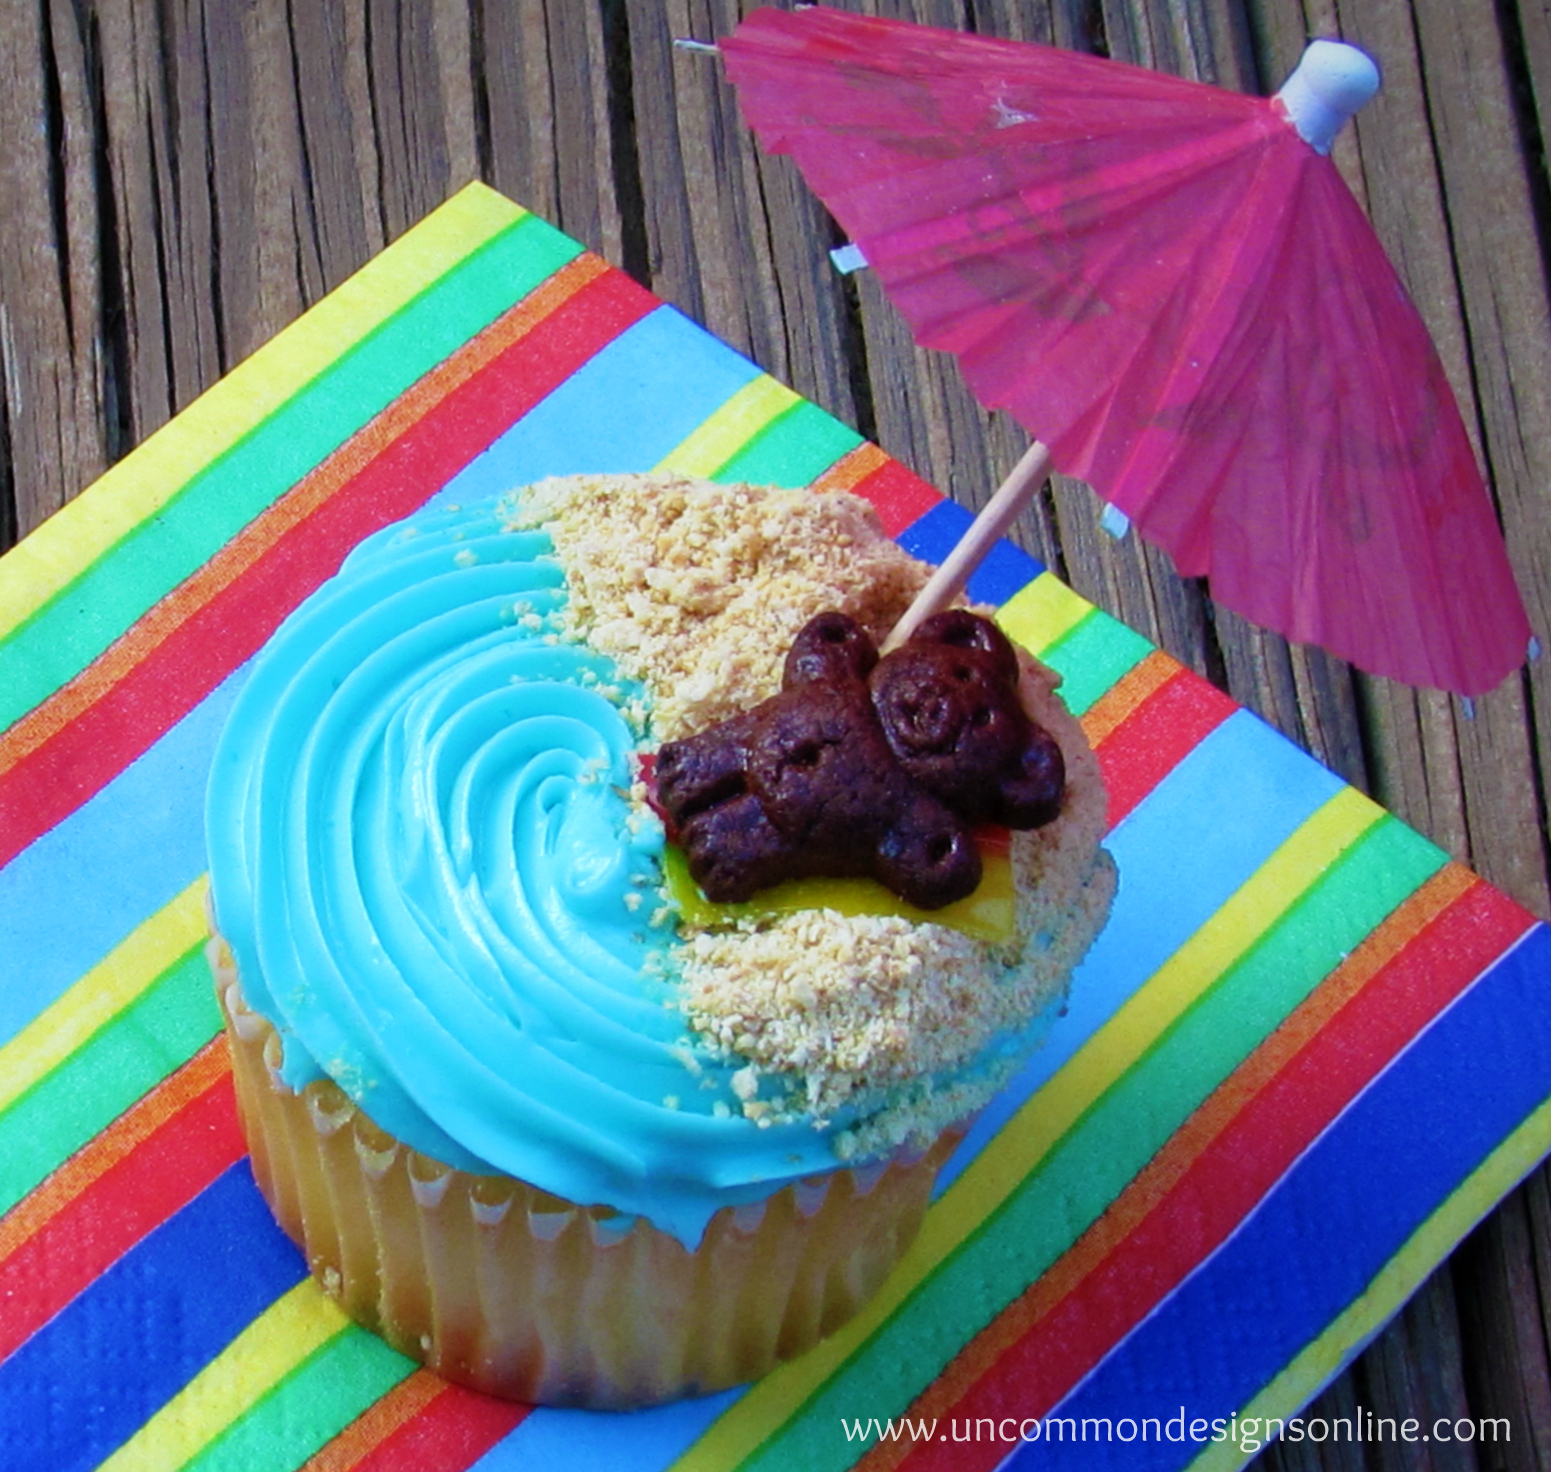 picture of cupcake with paper parasol